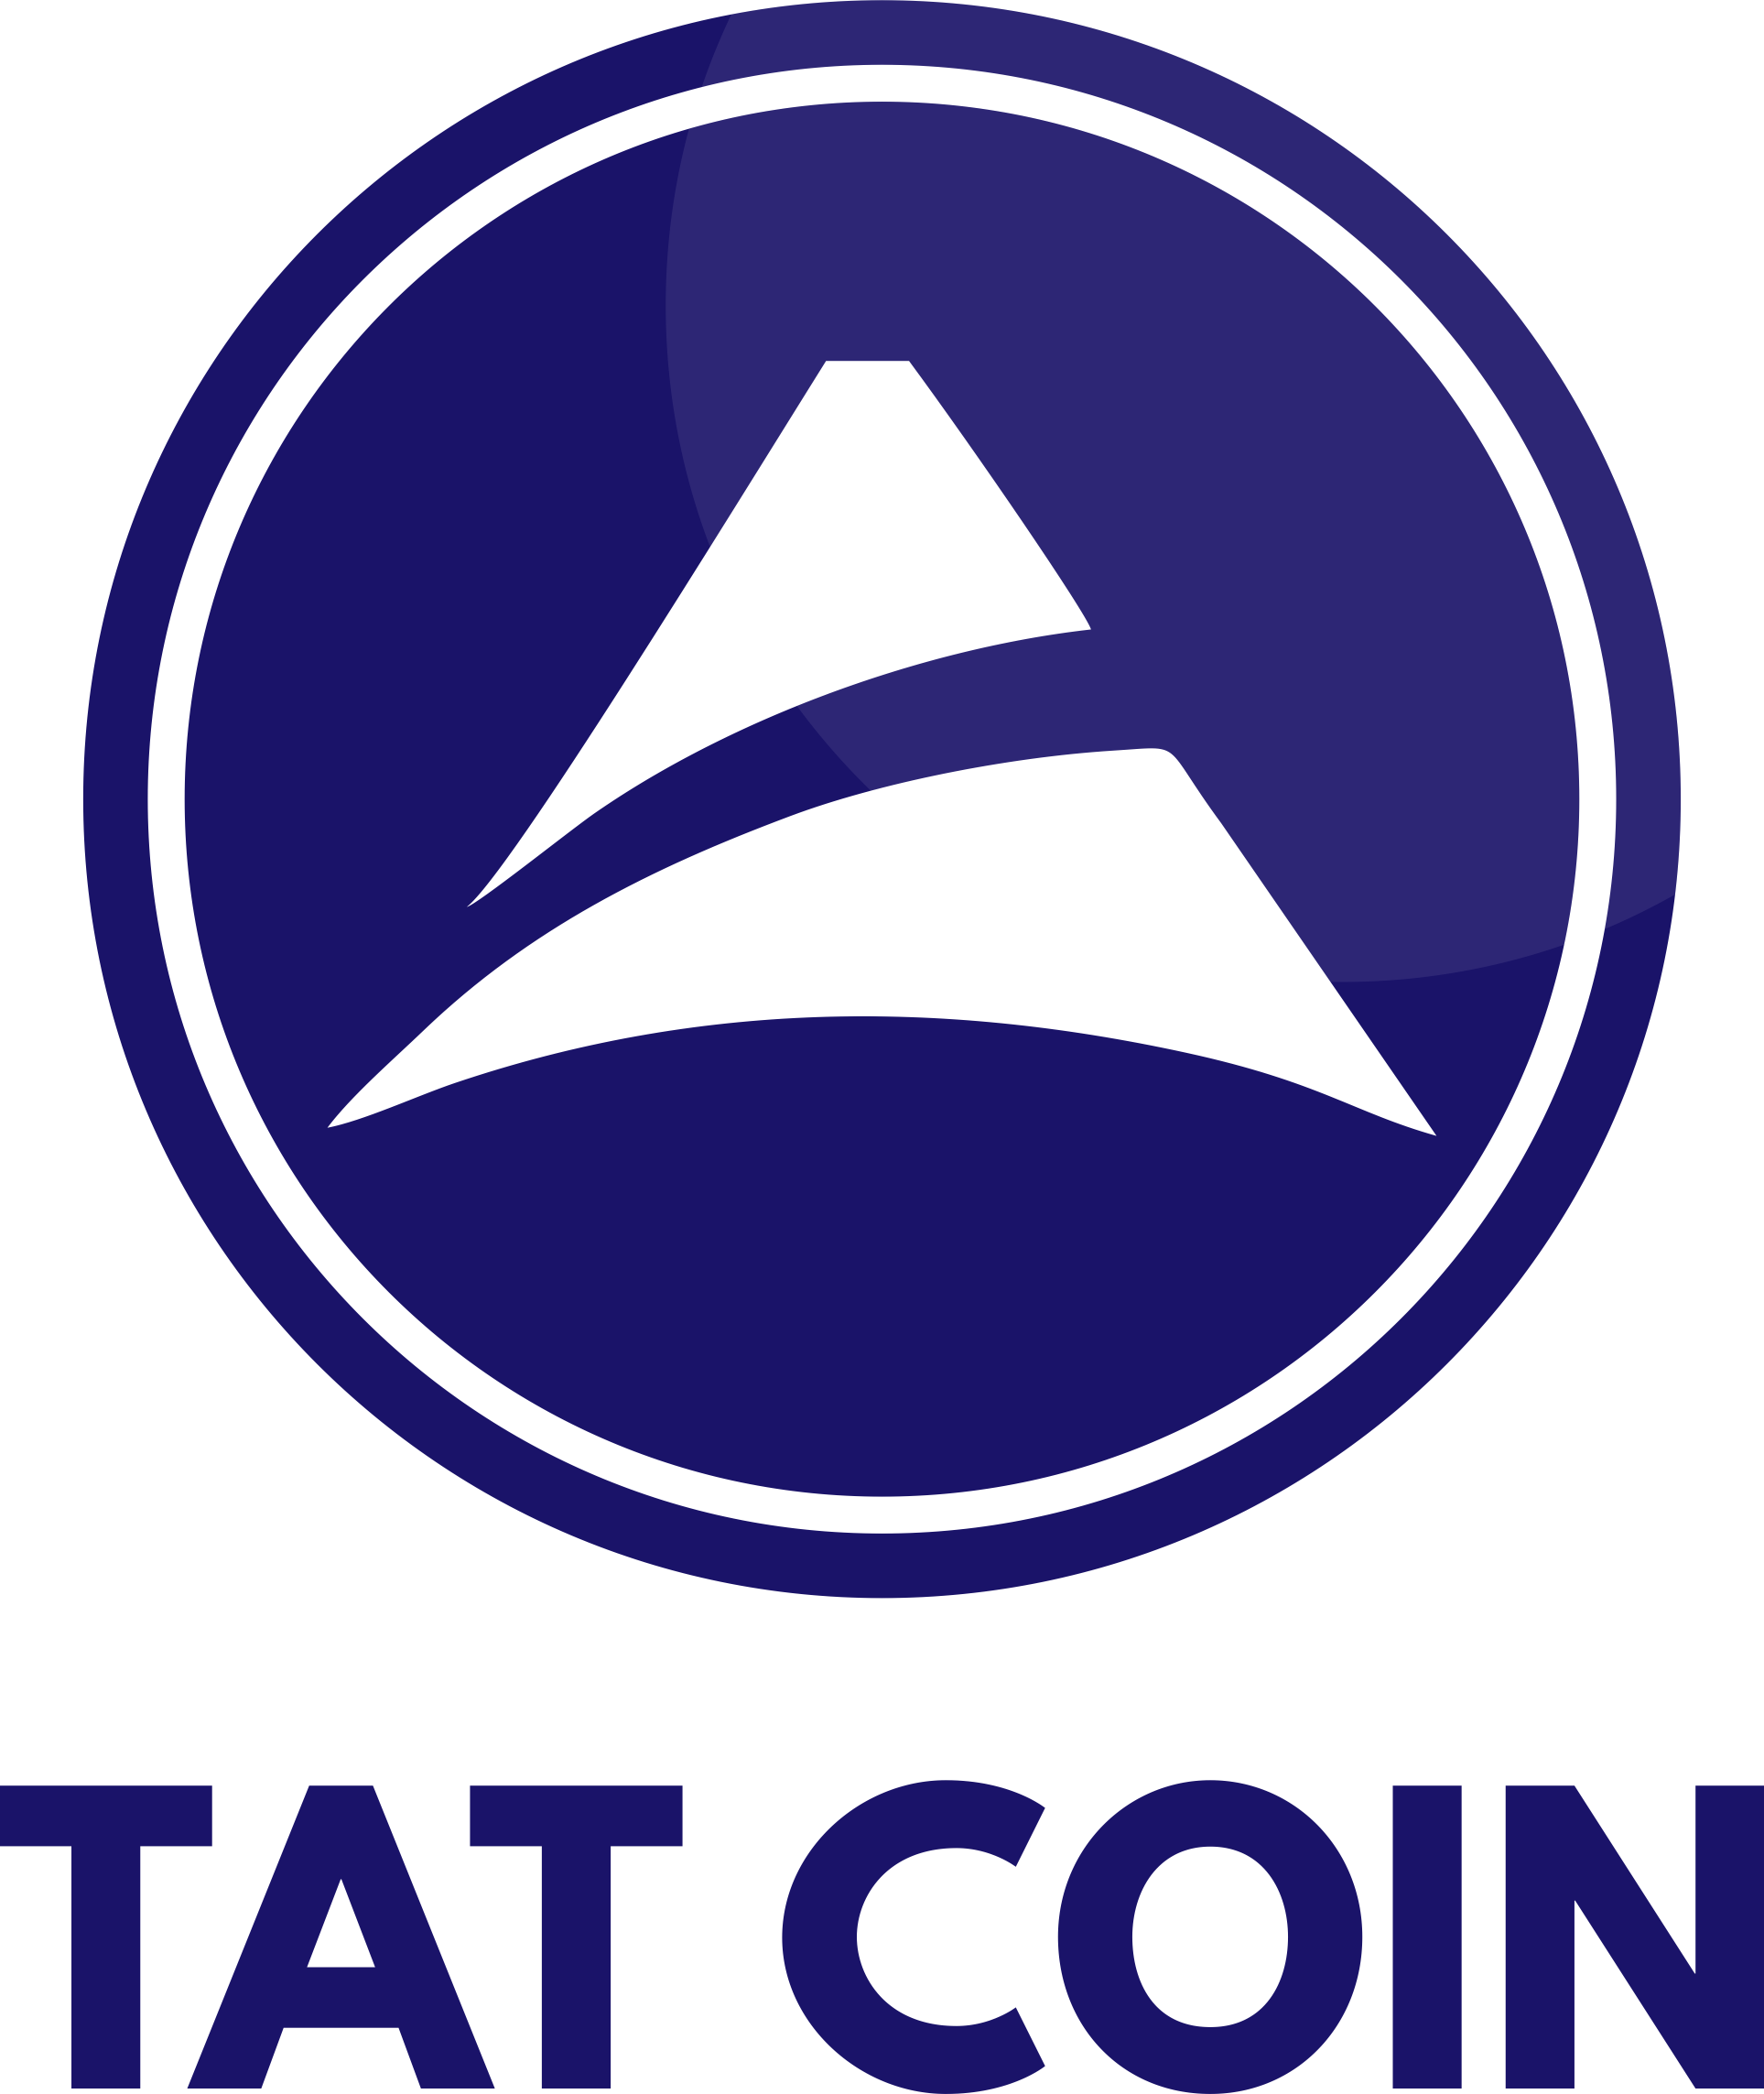 Official Tatcoin logo.png English: Tatcoin is a tradable token in the cryptocurrency market that is officially used as the transactional currency on the